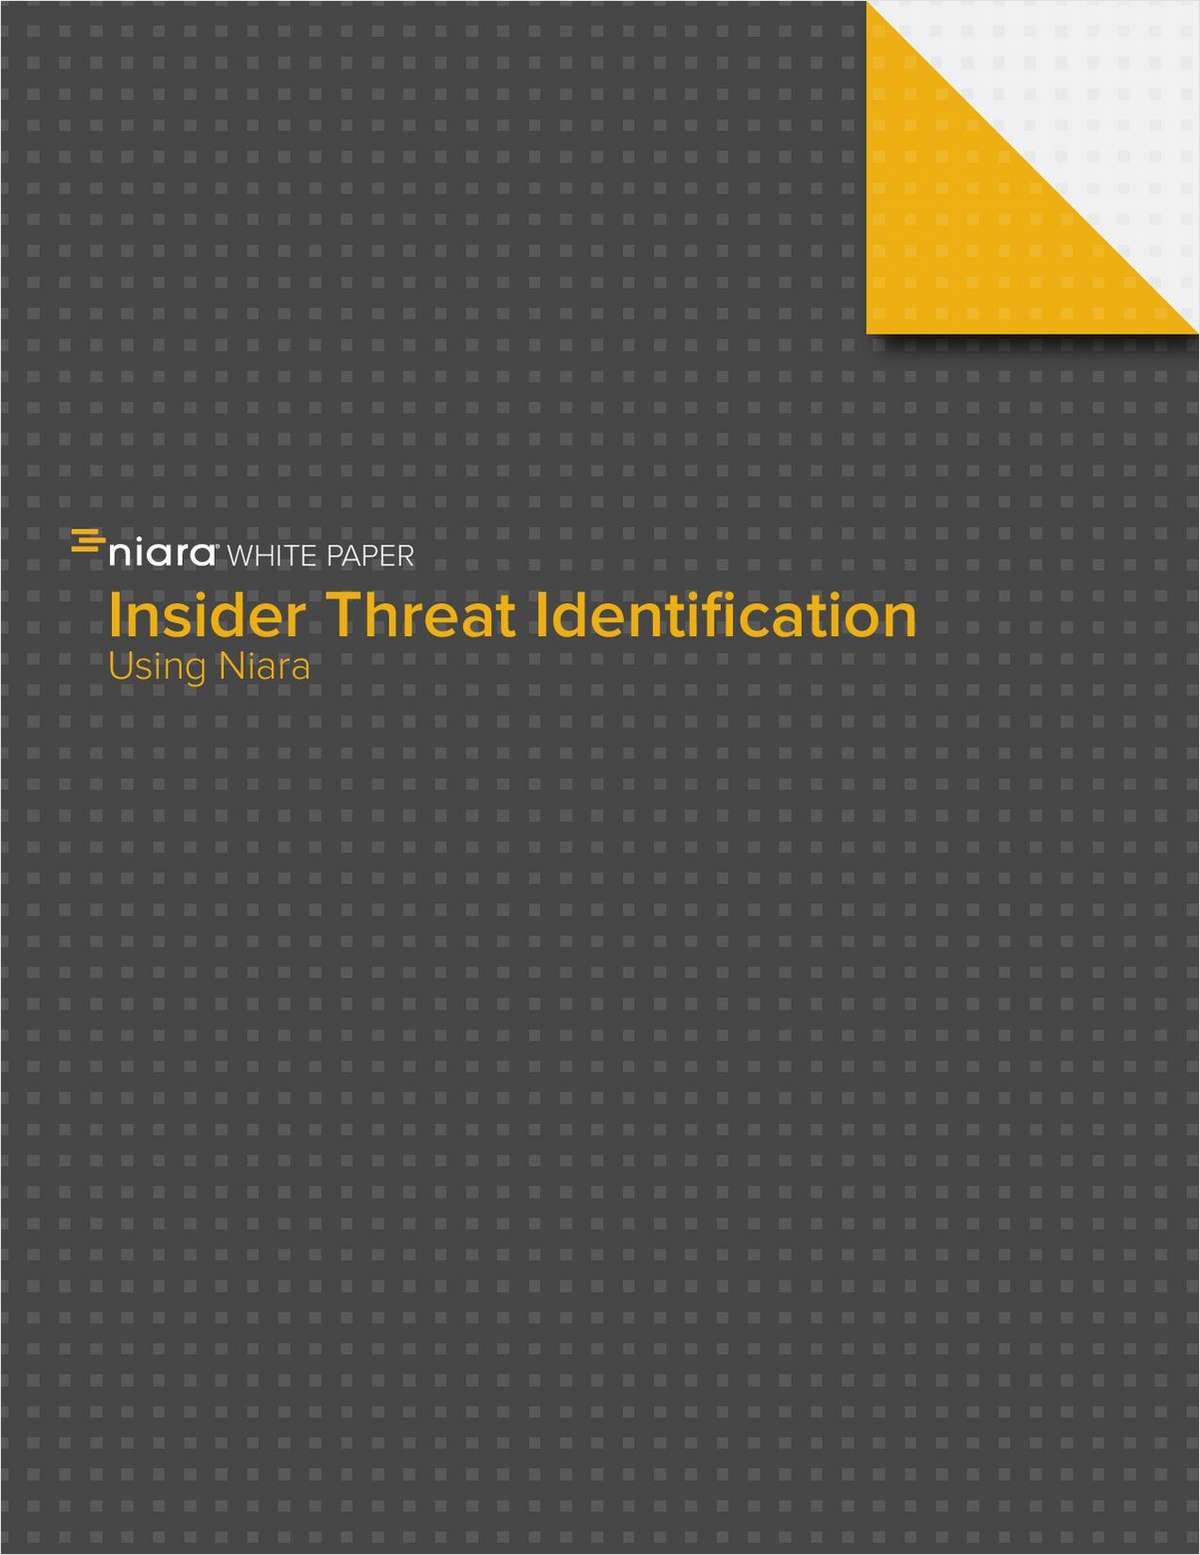 Malicious Insider & Negligent Employee Activity Detection